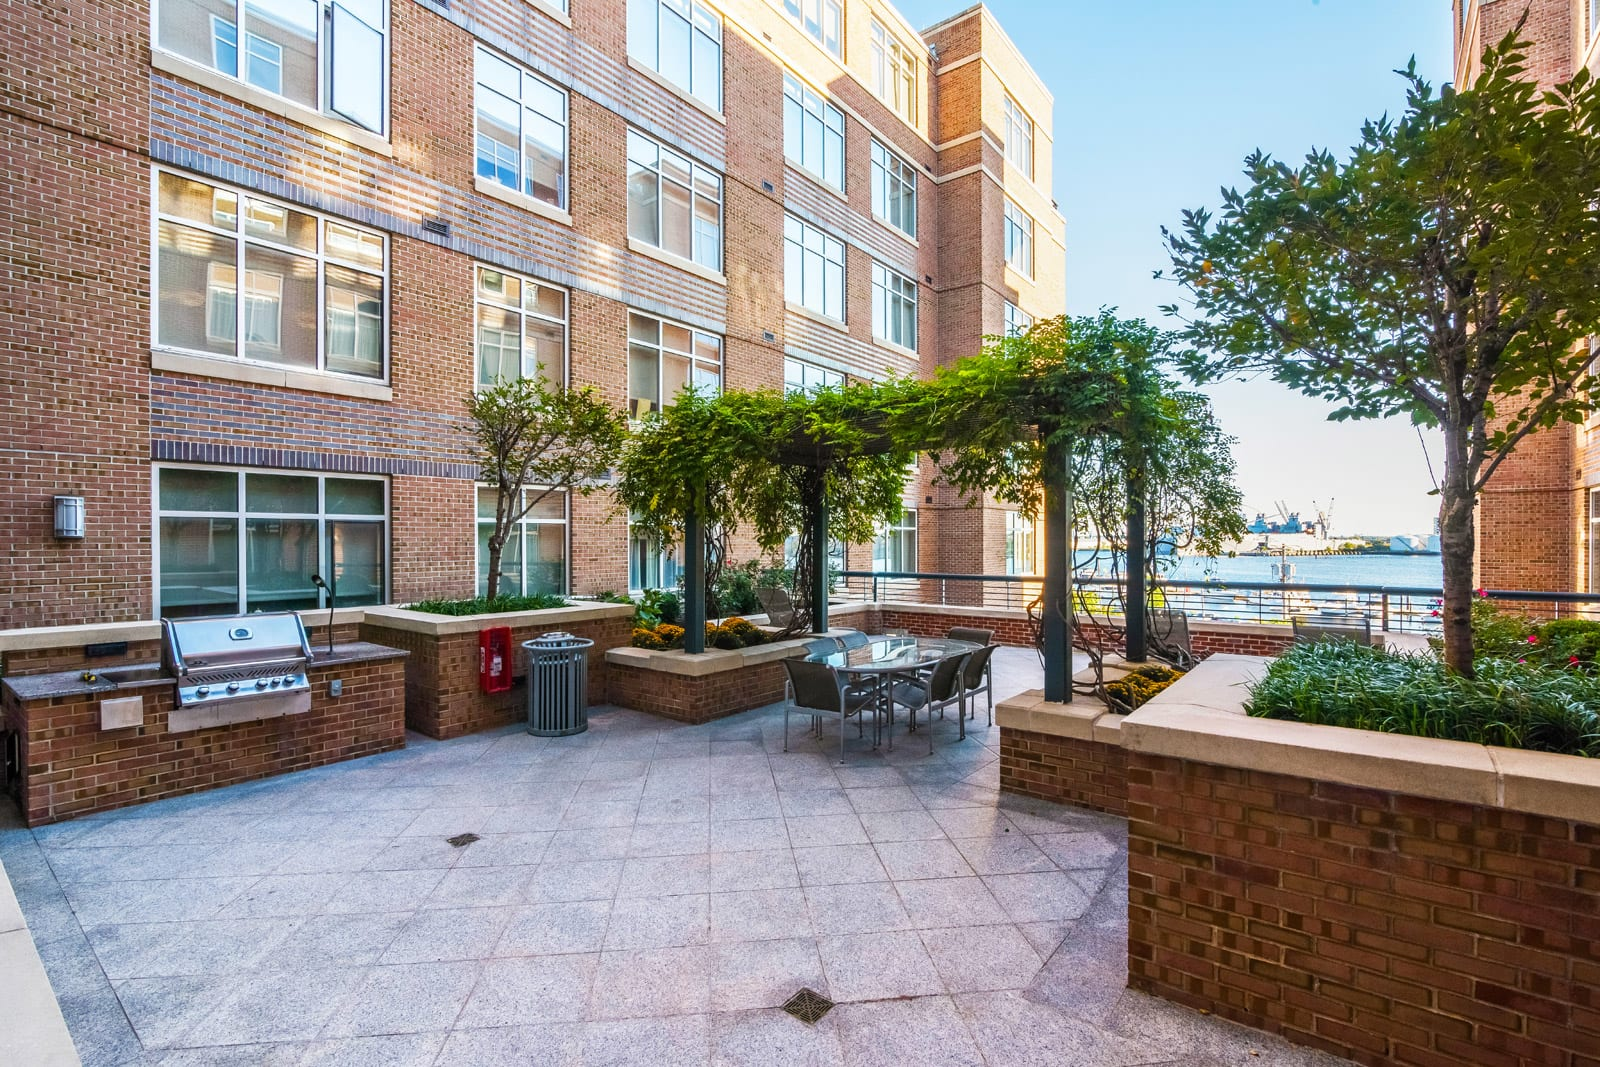 Courtyard with Grill and Picnic Area at Crescent at Fells Point by Windsor, Baltimore, MD